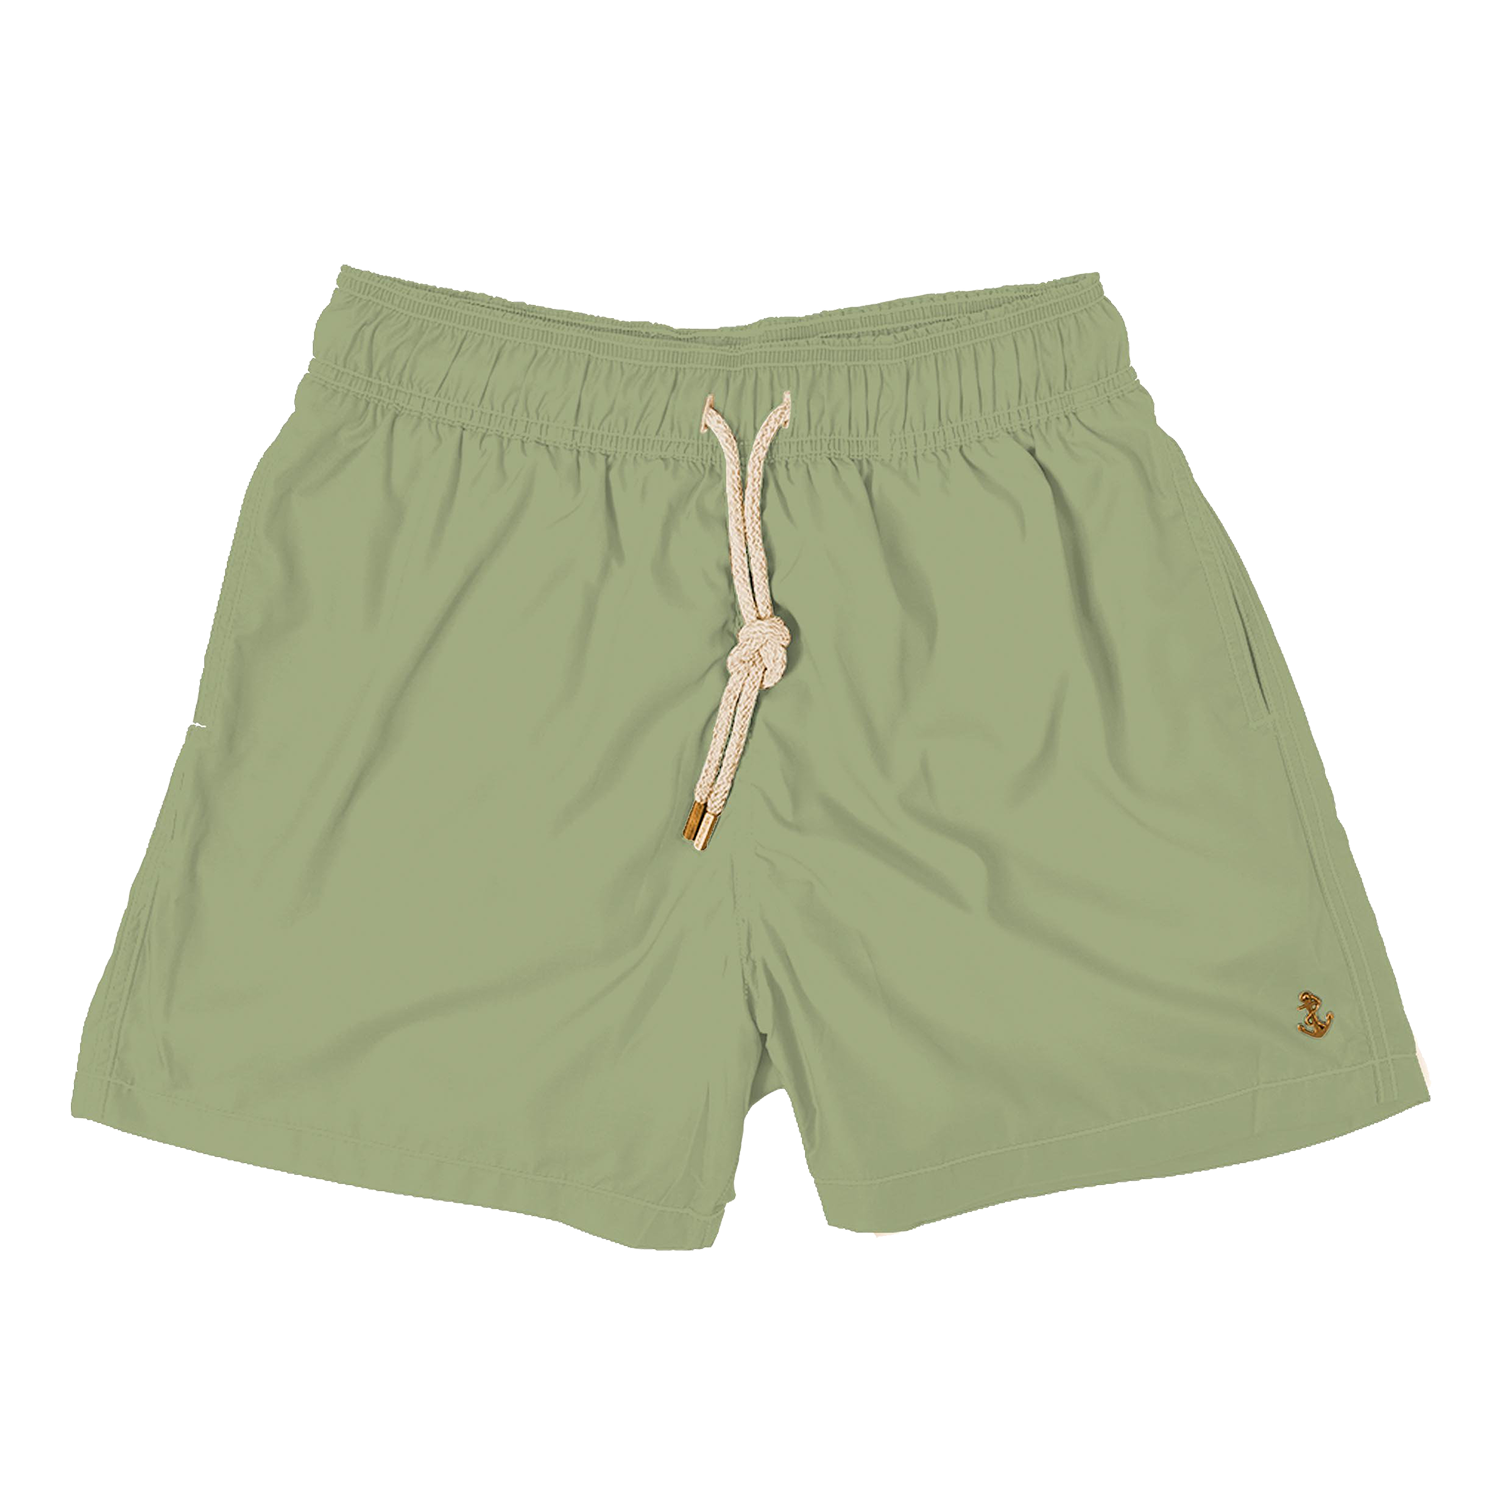 pomme green mens swimwear - retromarine